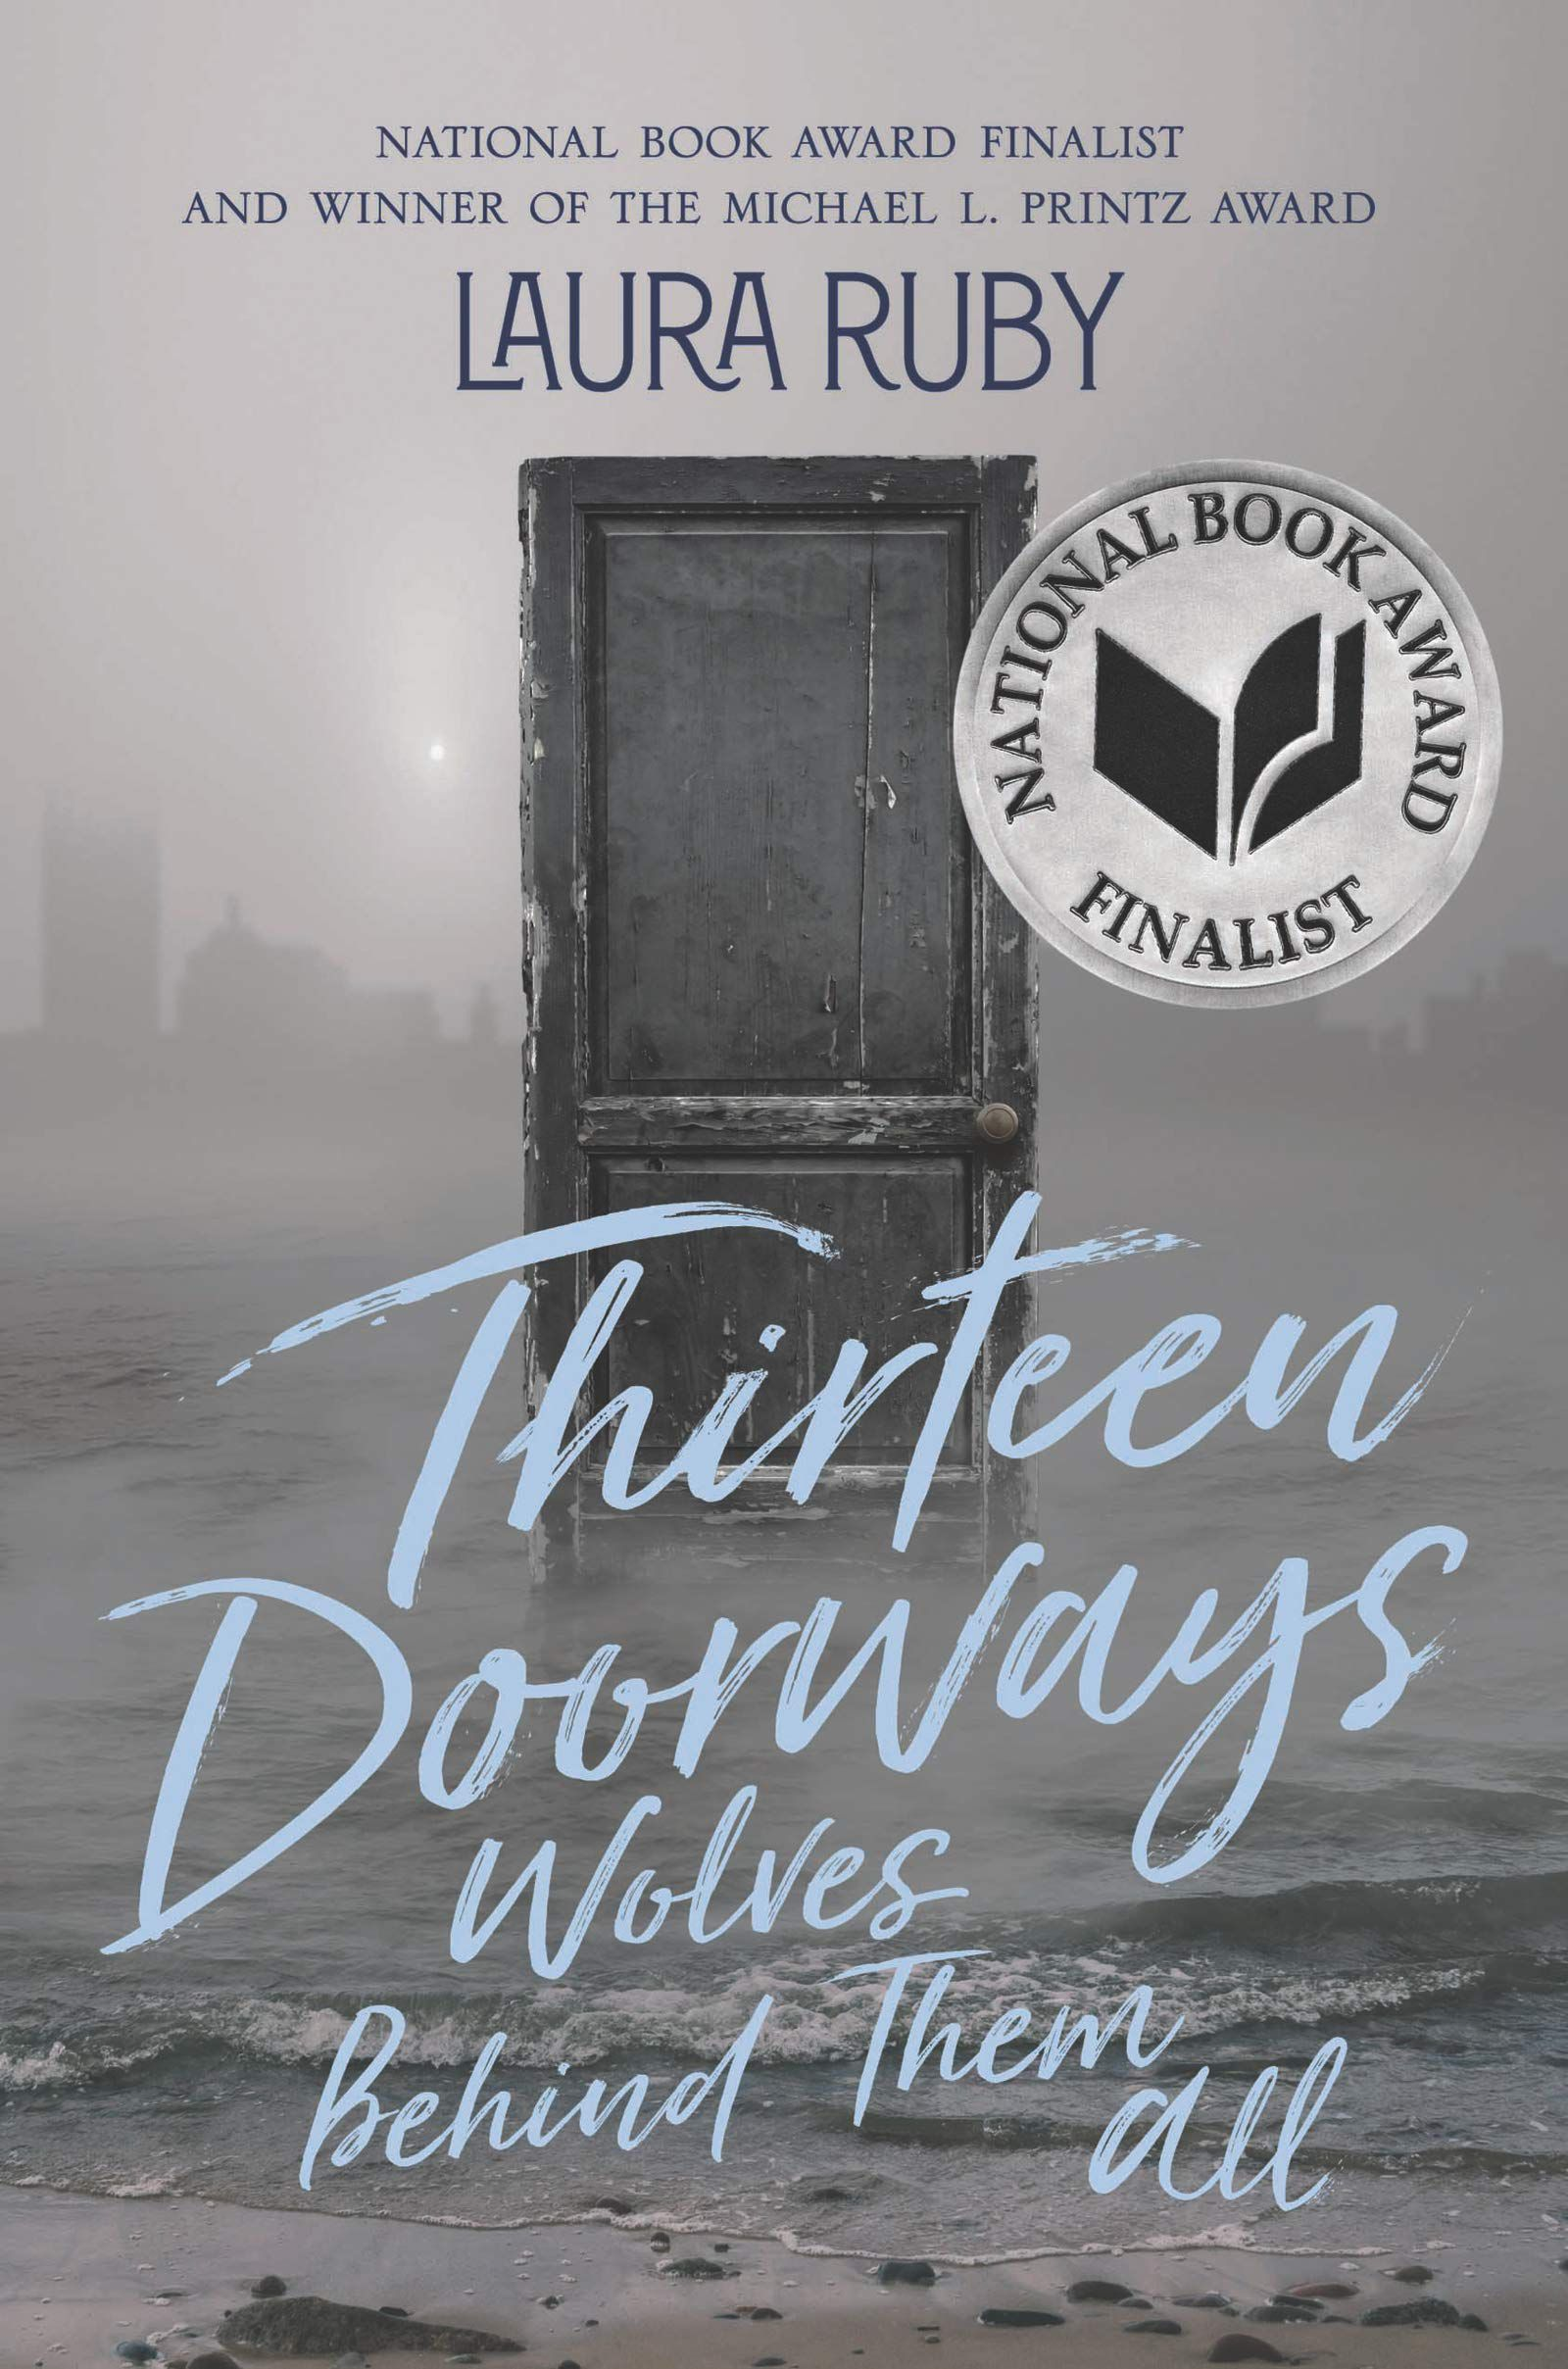 Book cover of Thirteen Doorways Wolves Behind them All